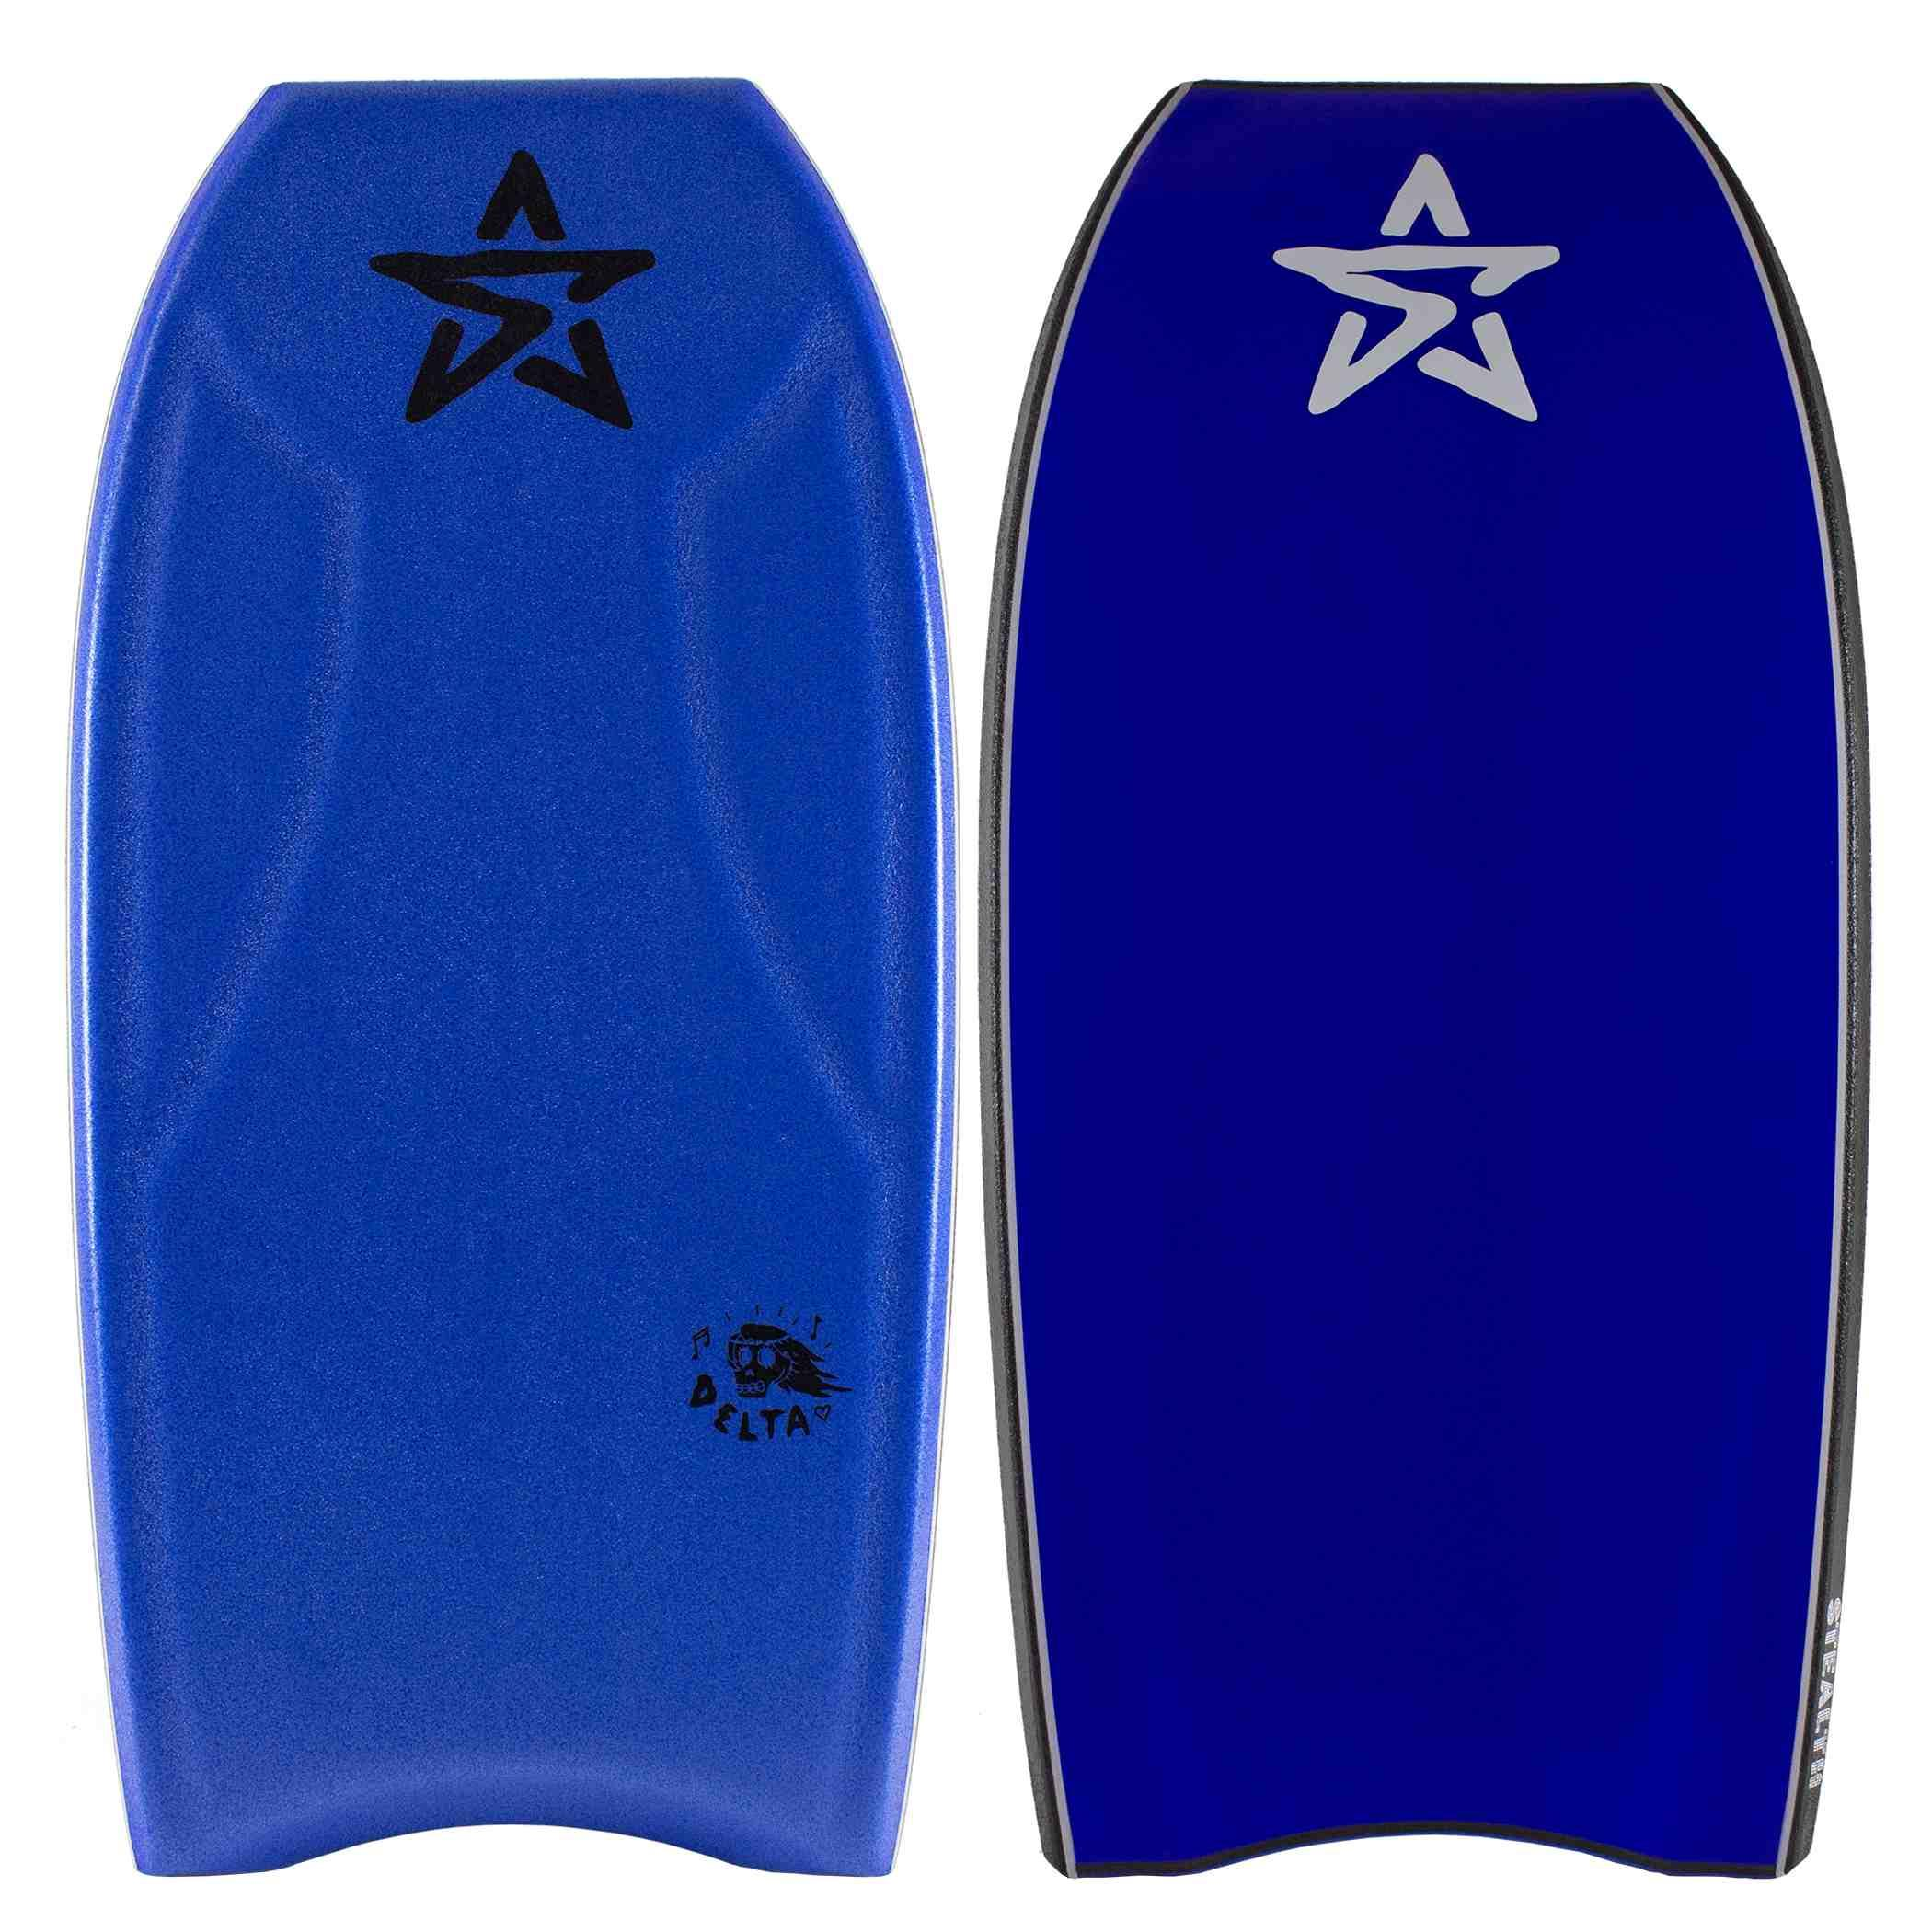 720c43a16180 STEALTH BODYBOARDS Delta PE Core - 2017 18 Model - Package Deal - Assorted  Colours